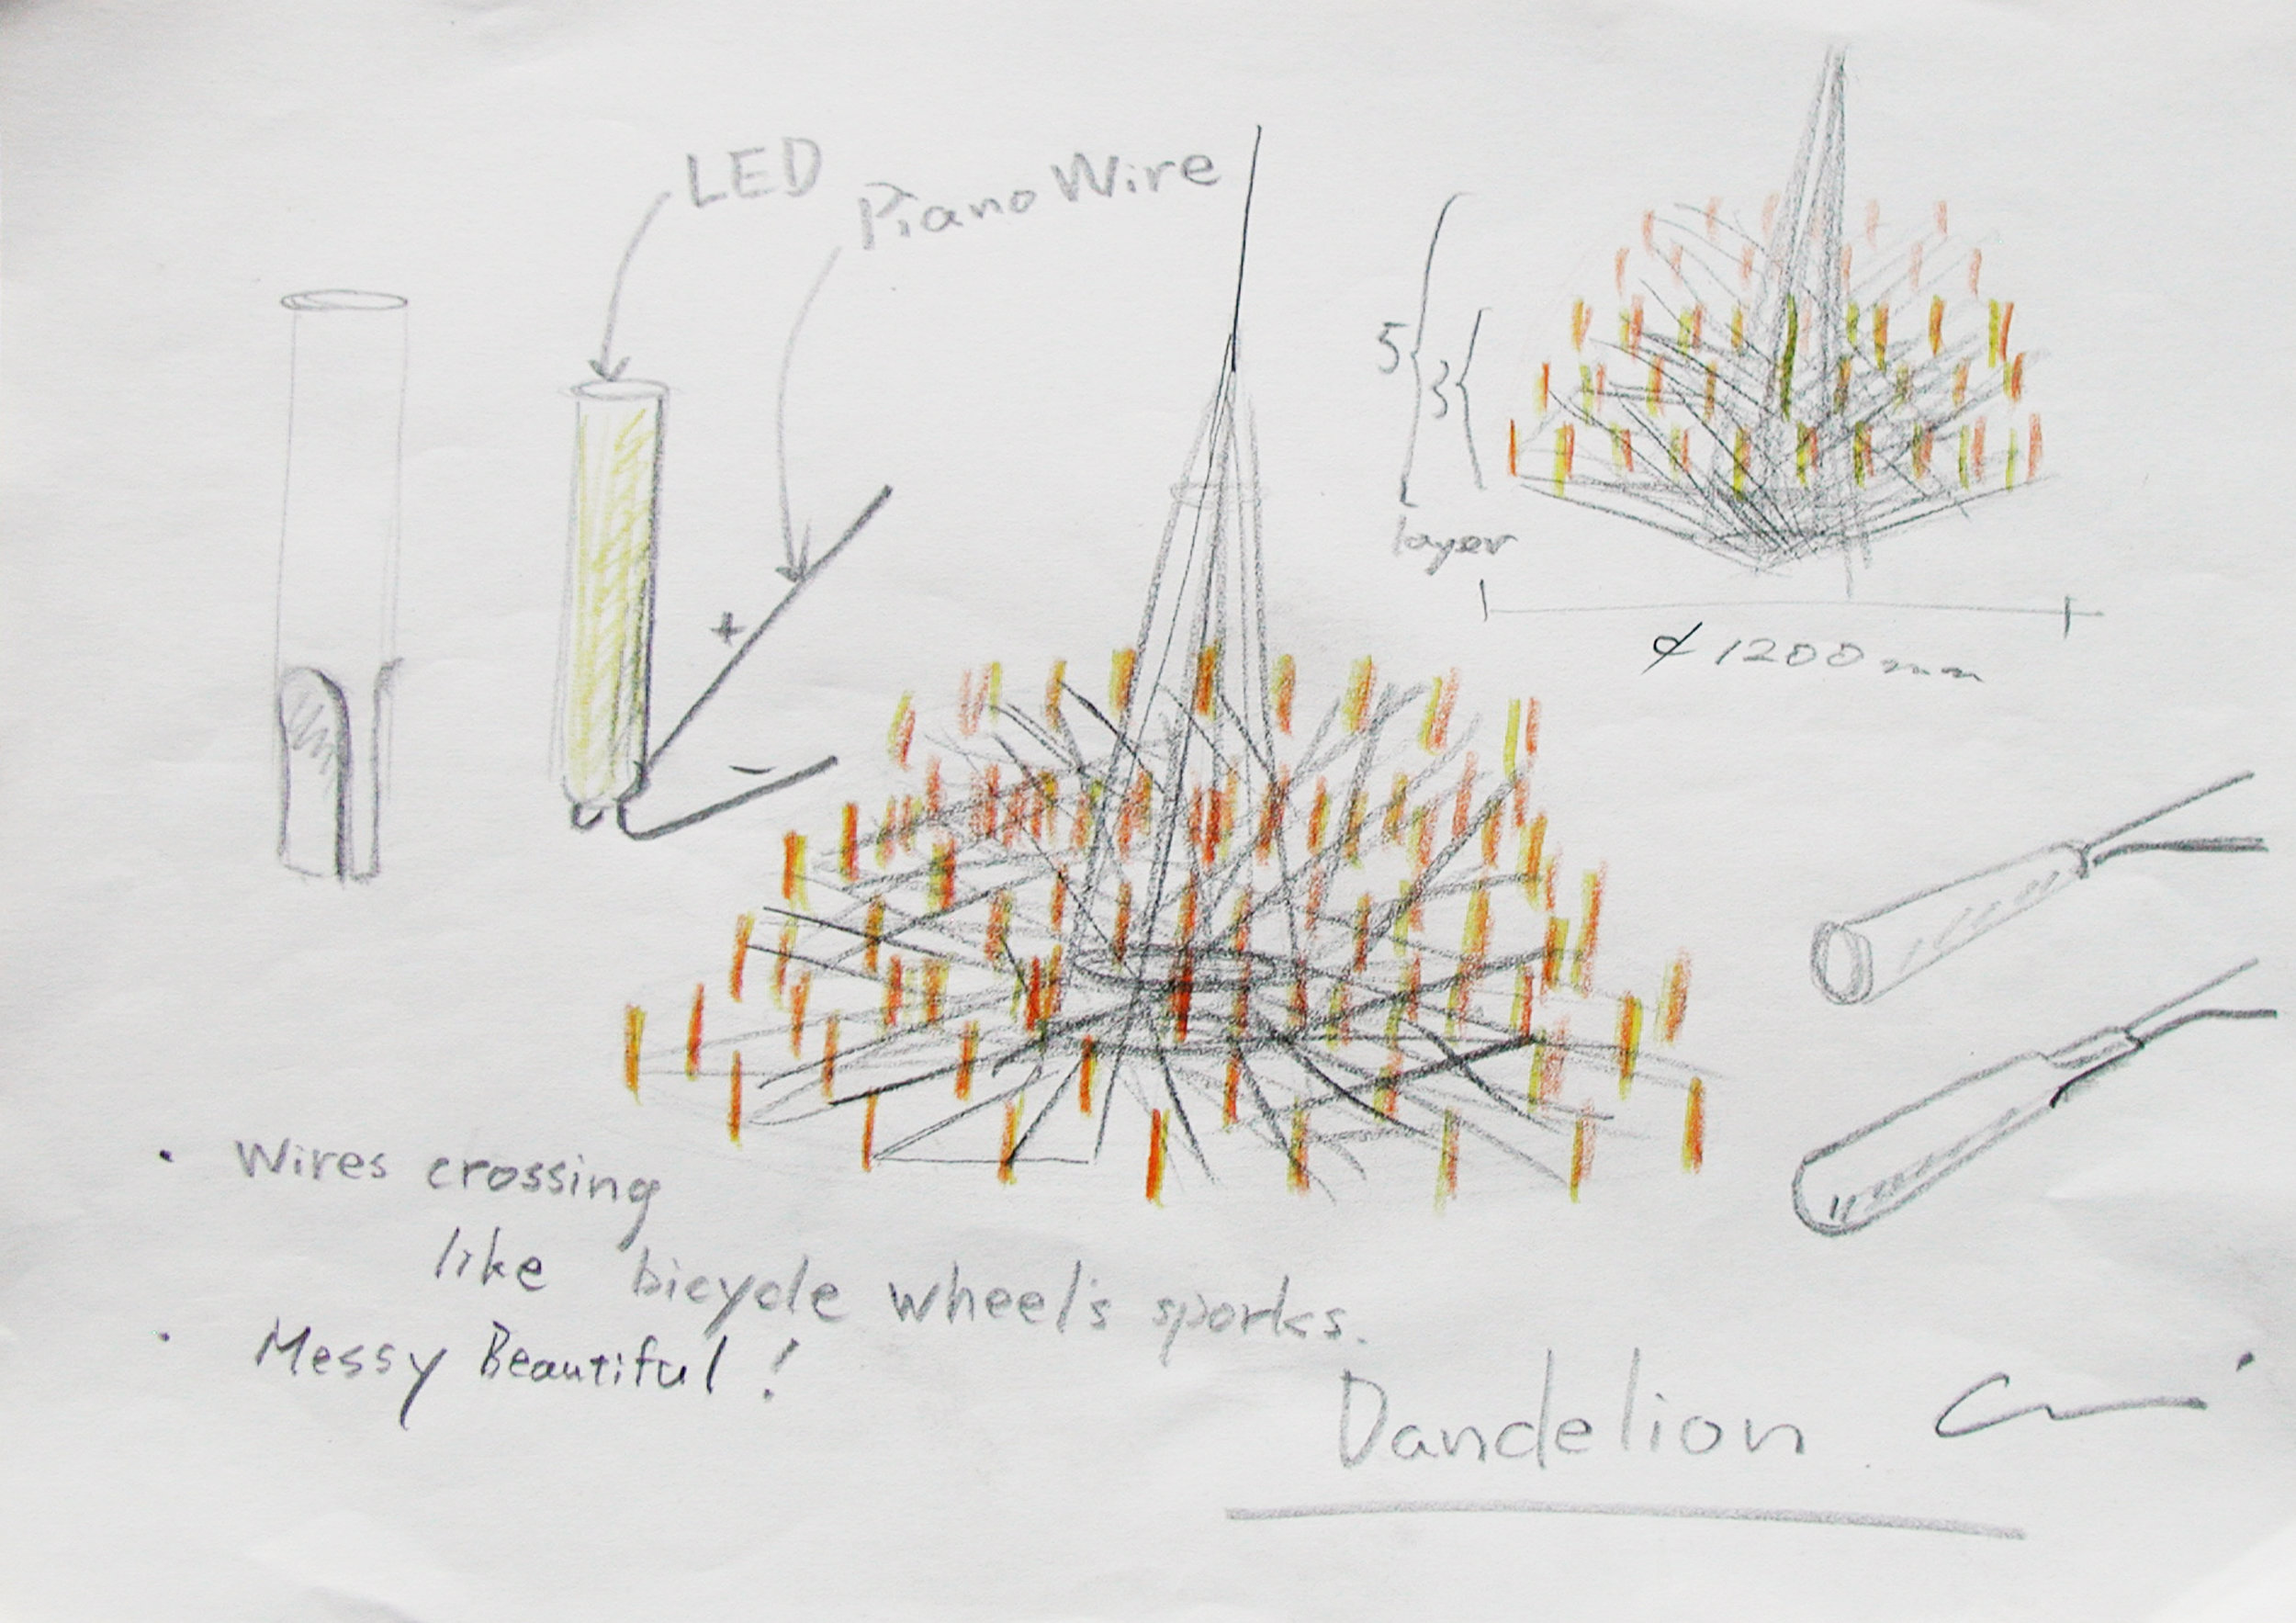 An early sketch of the Coppélia Chandelier designed by Arihiro Miyake and manufacturered by Moooi, showing an intricate 'bloom' of carefully detailed LEDs.